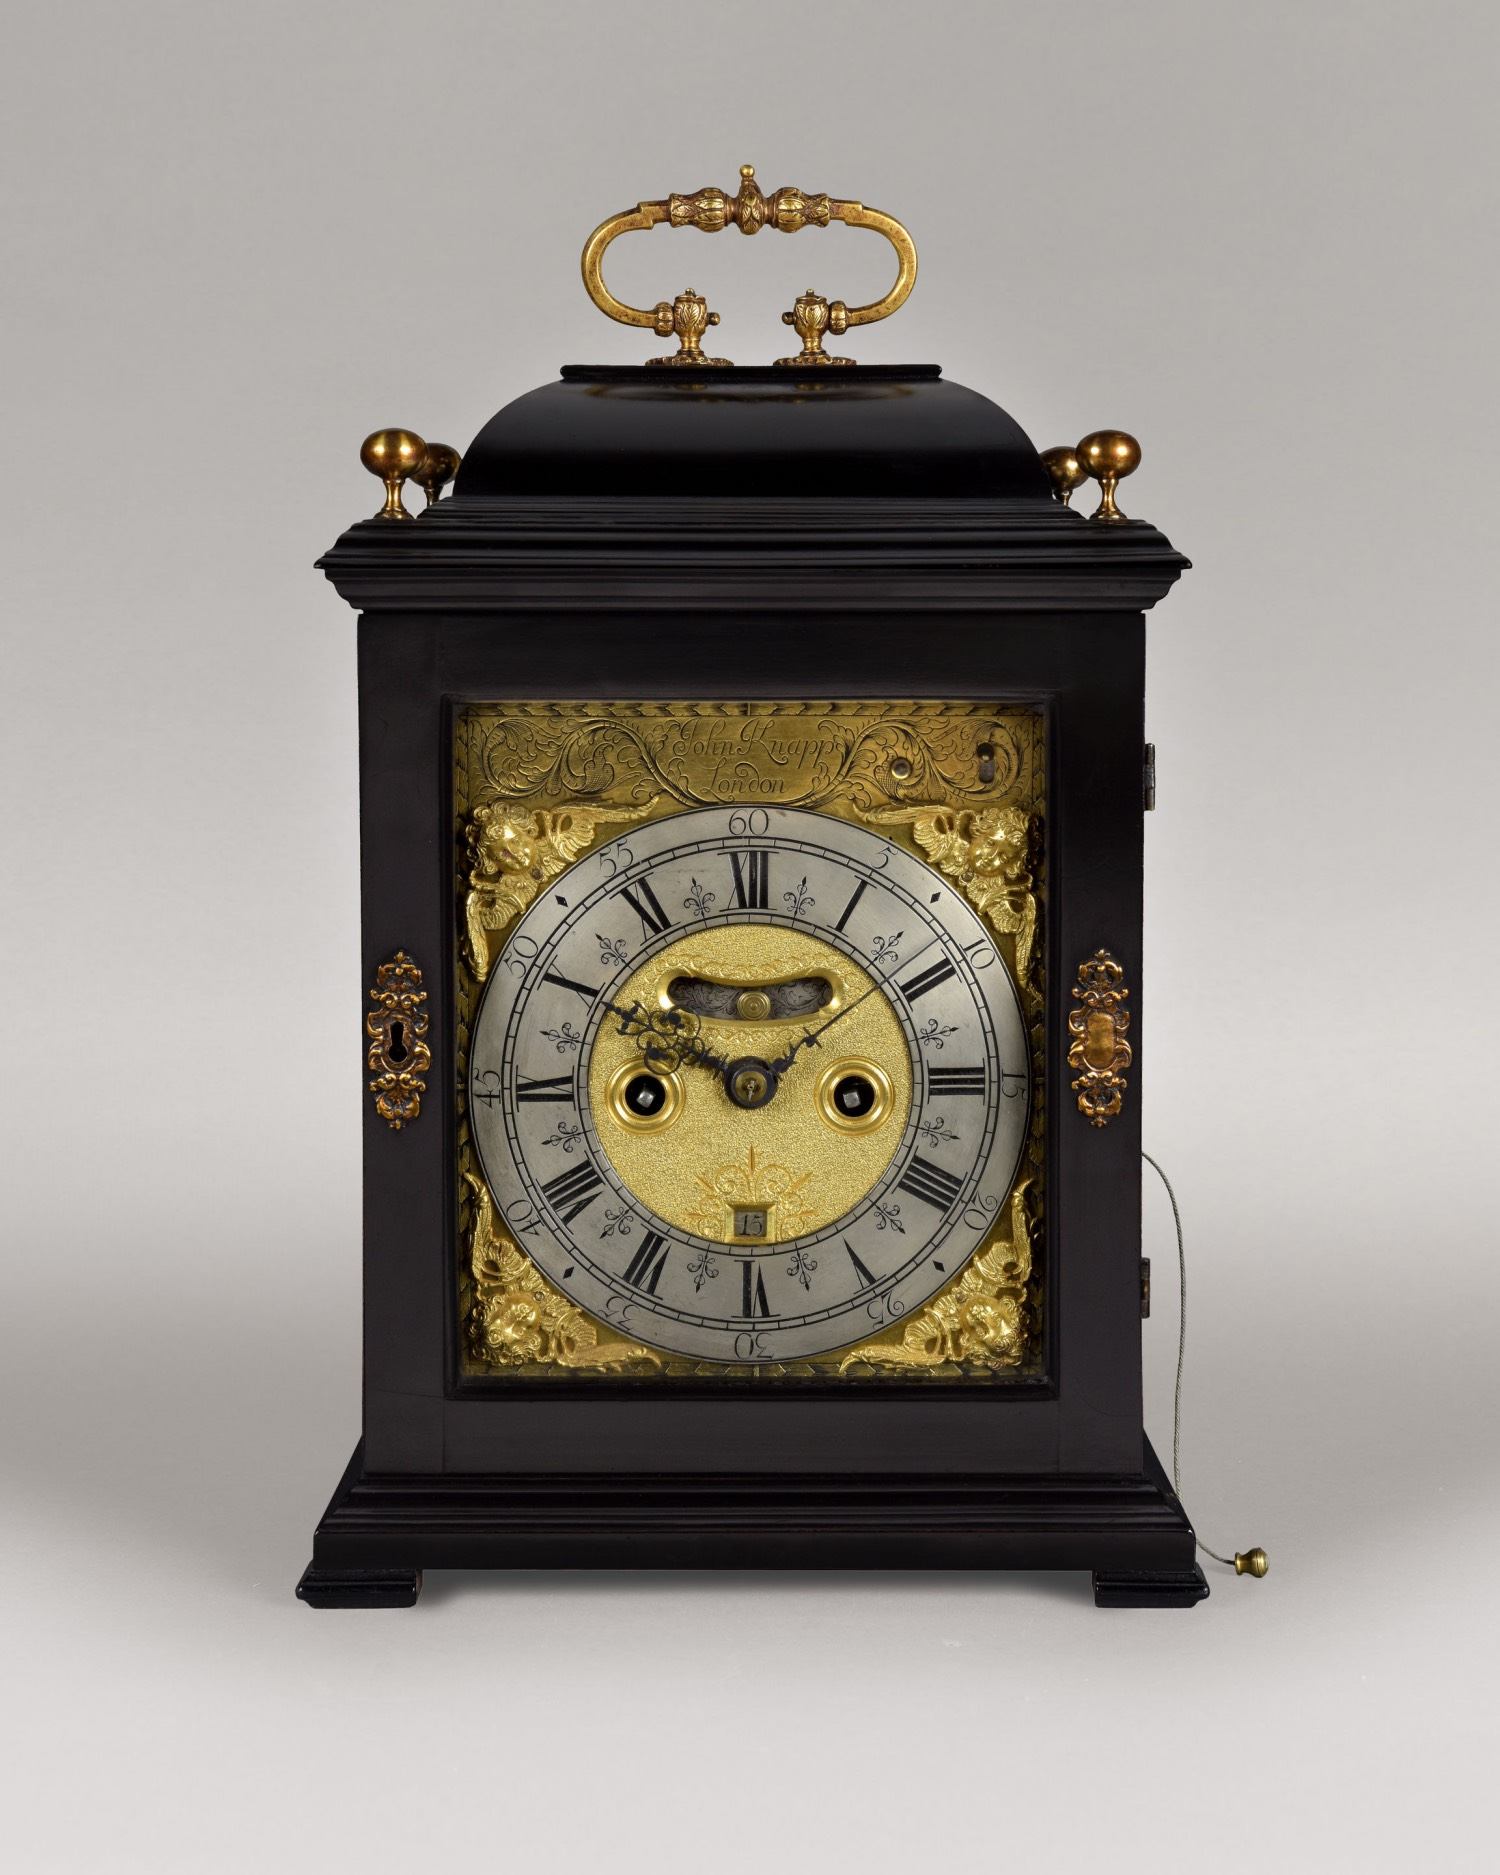 JOHN KNAPP. A QUEEN ANNE PERIOD EBONISED HOUR-STRIKING TABLE CLOCK.